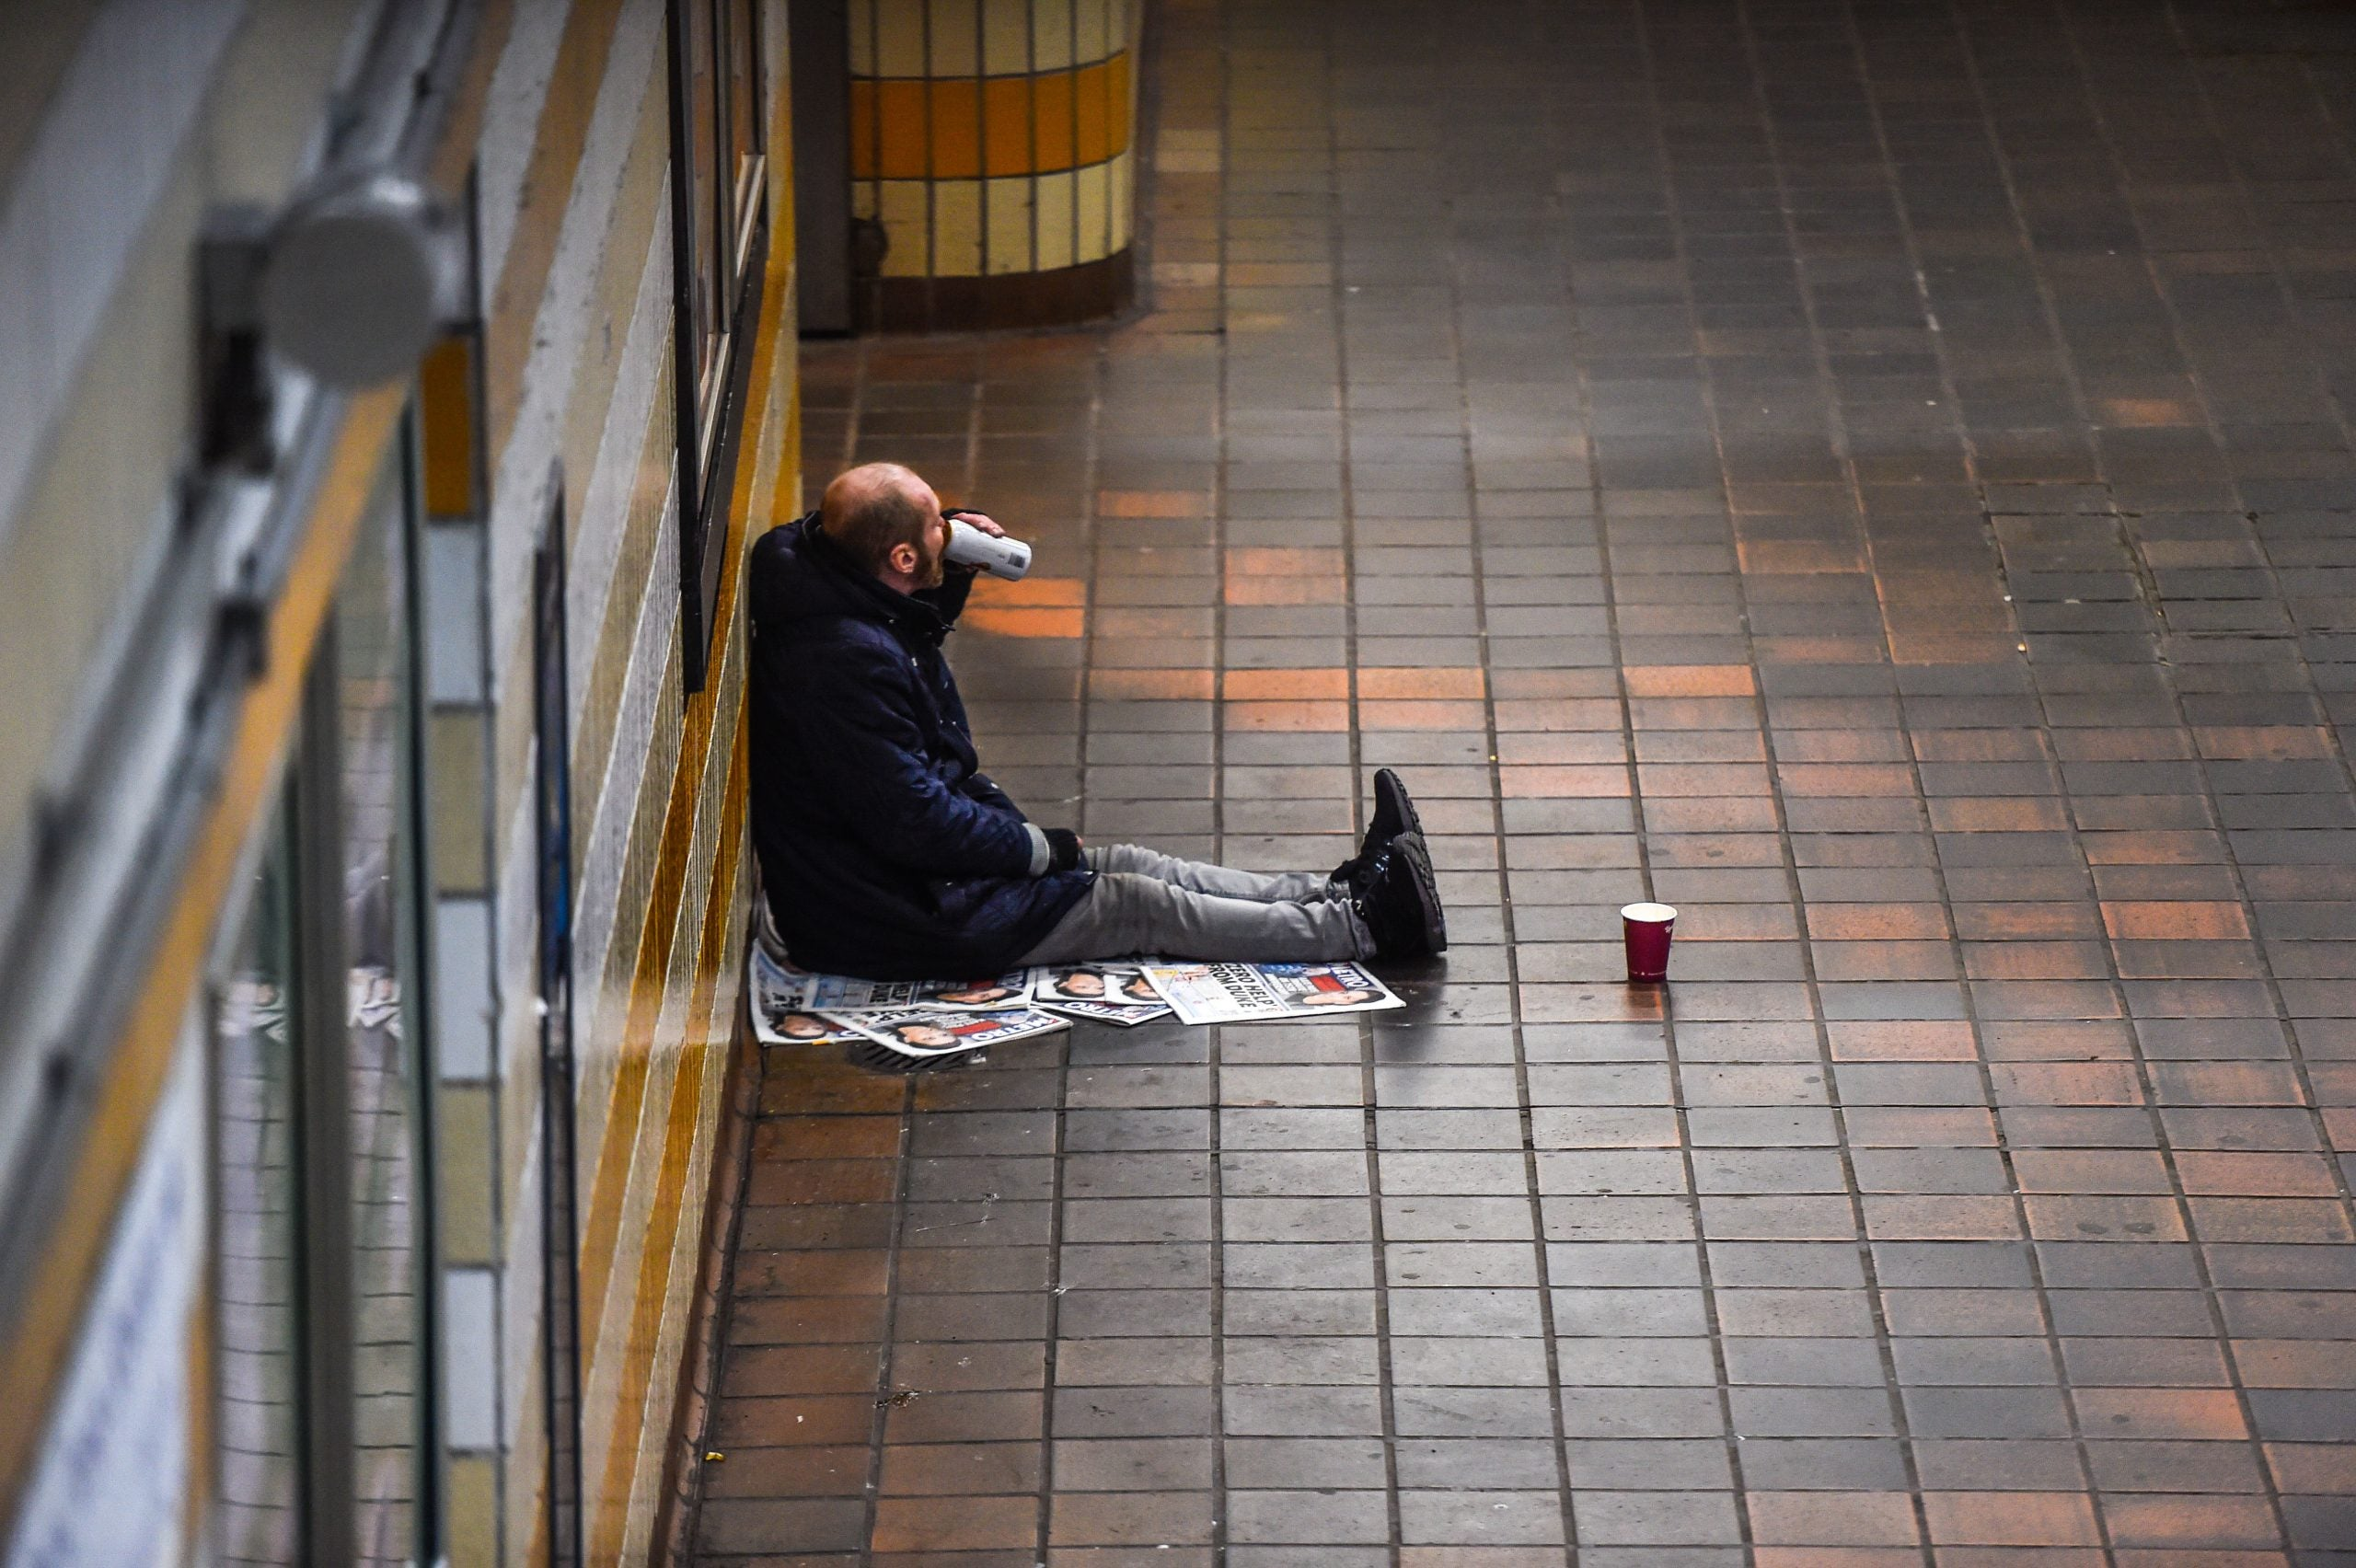 Hailed by a homeless guy, I should have kept my distance and hurried on – but I couldn't